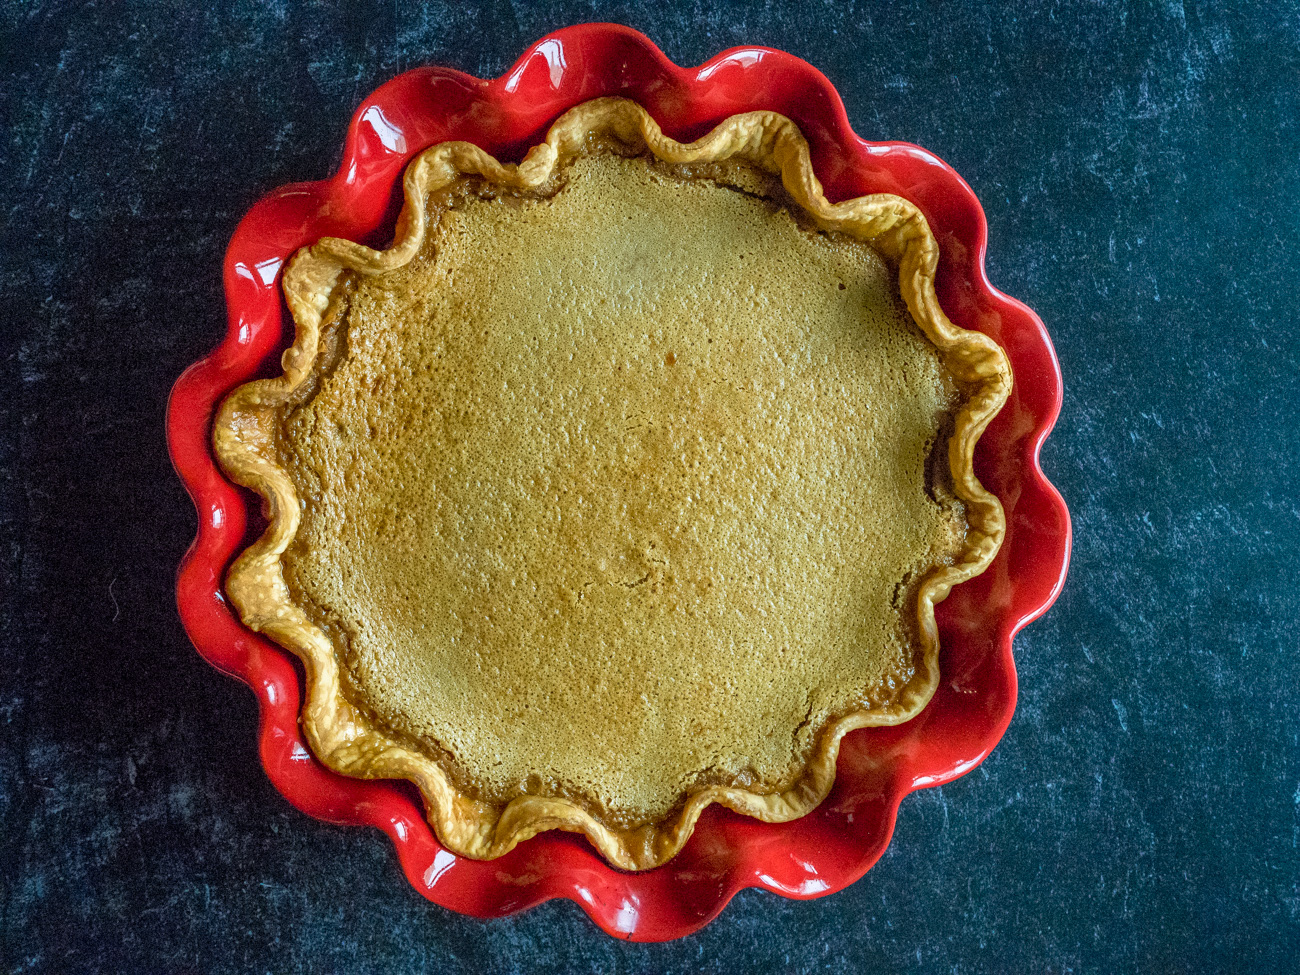 Bake for 60-65 minutes, or until the center is set. (It will still seem slightly jiggly in the very center, but a knife put in the center should come out nearly clean.)